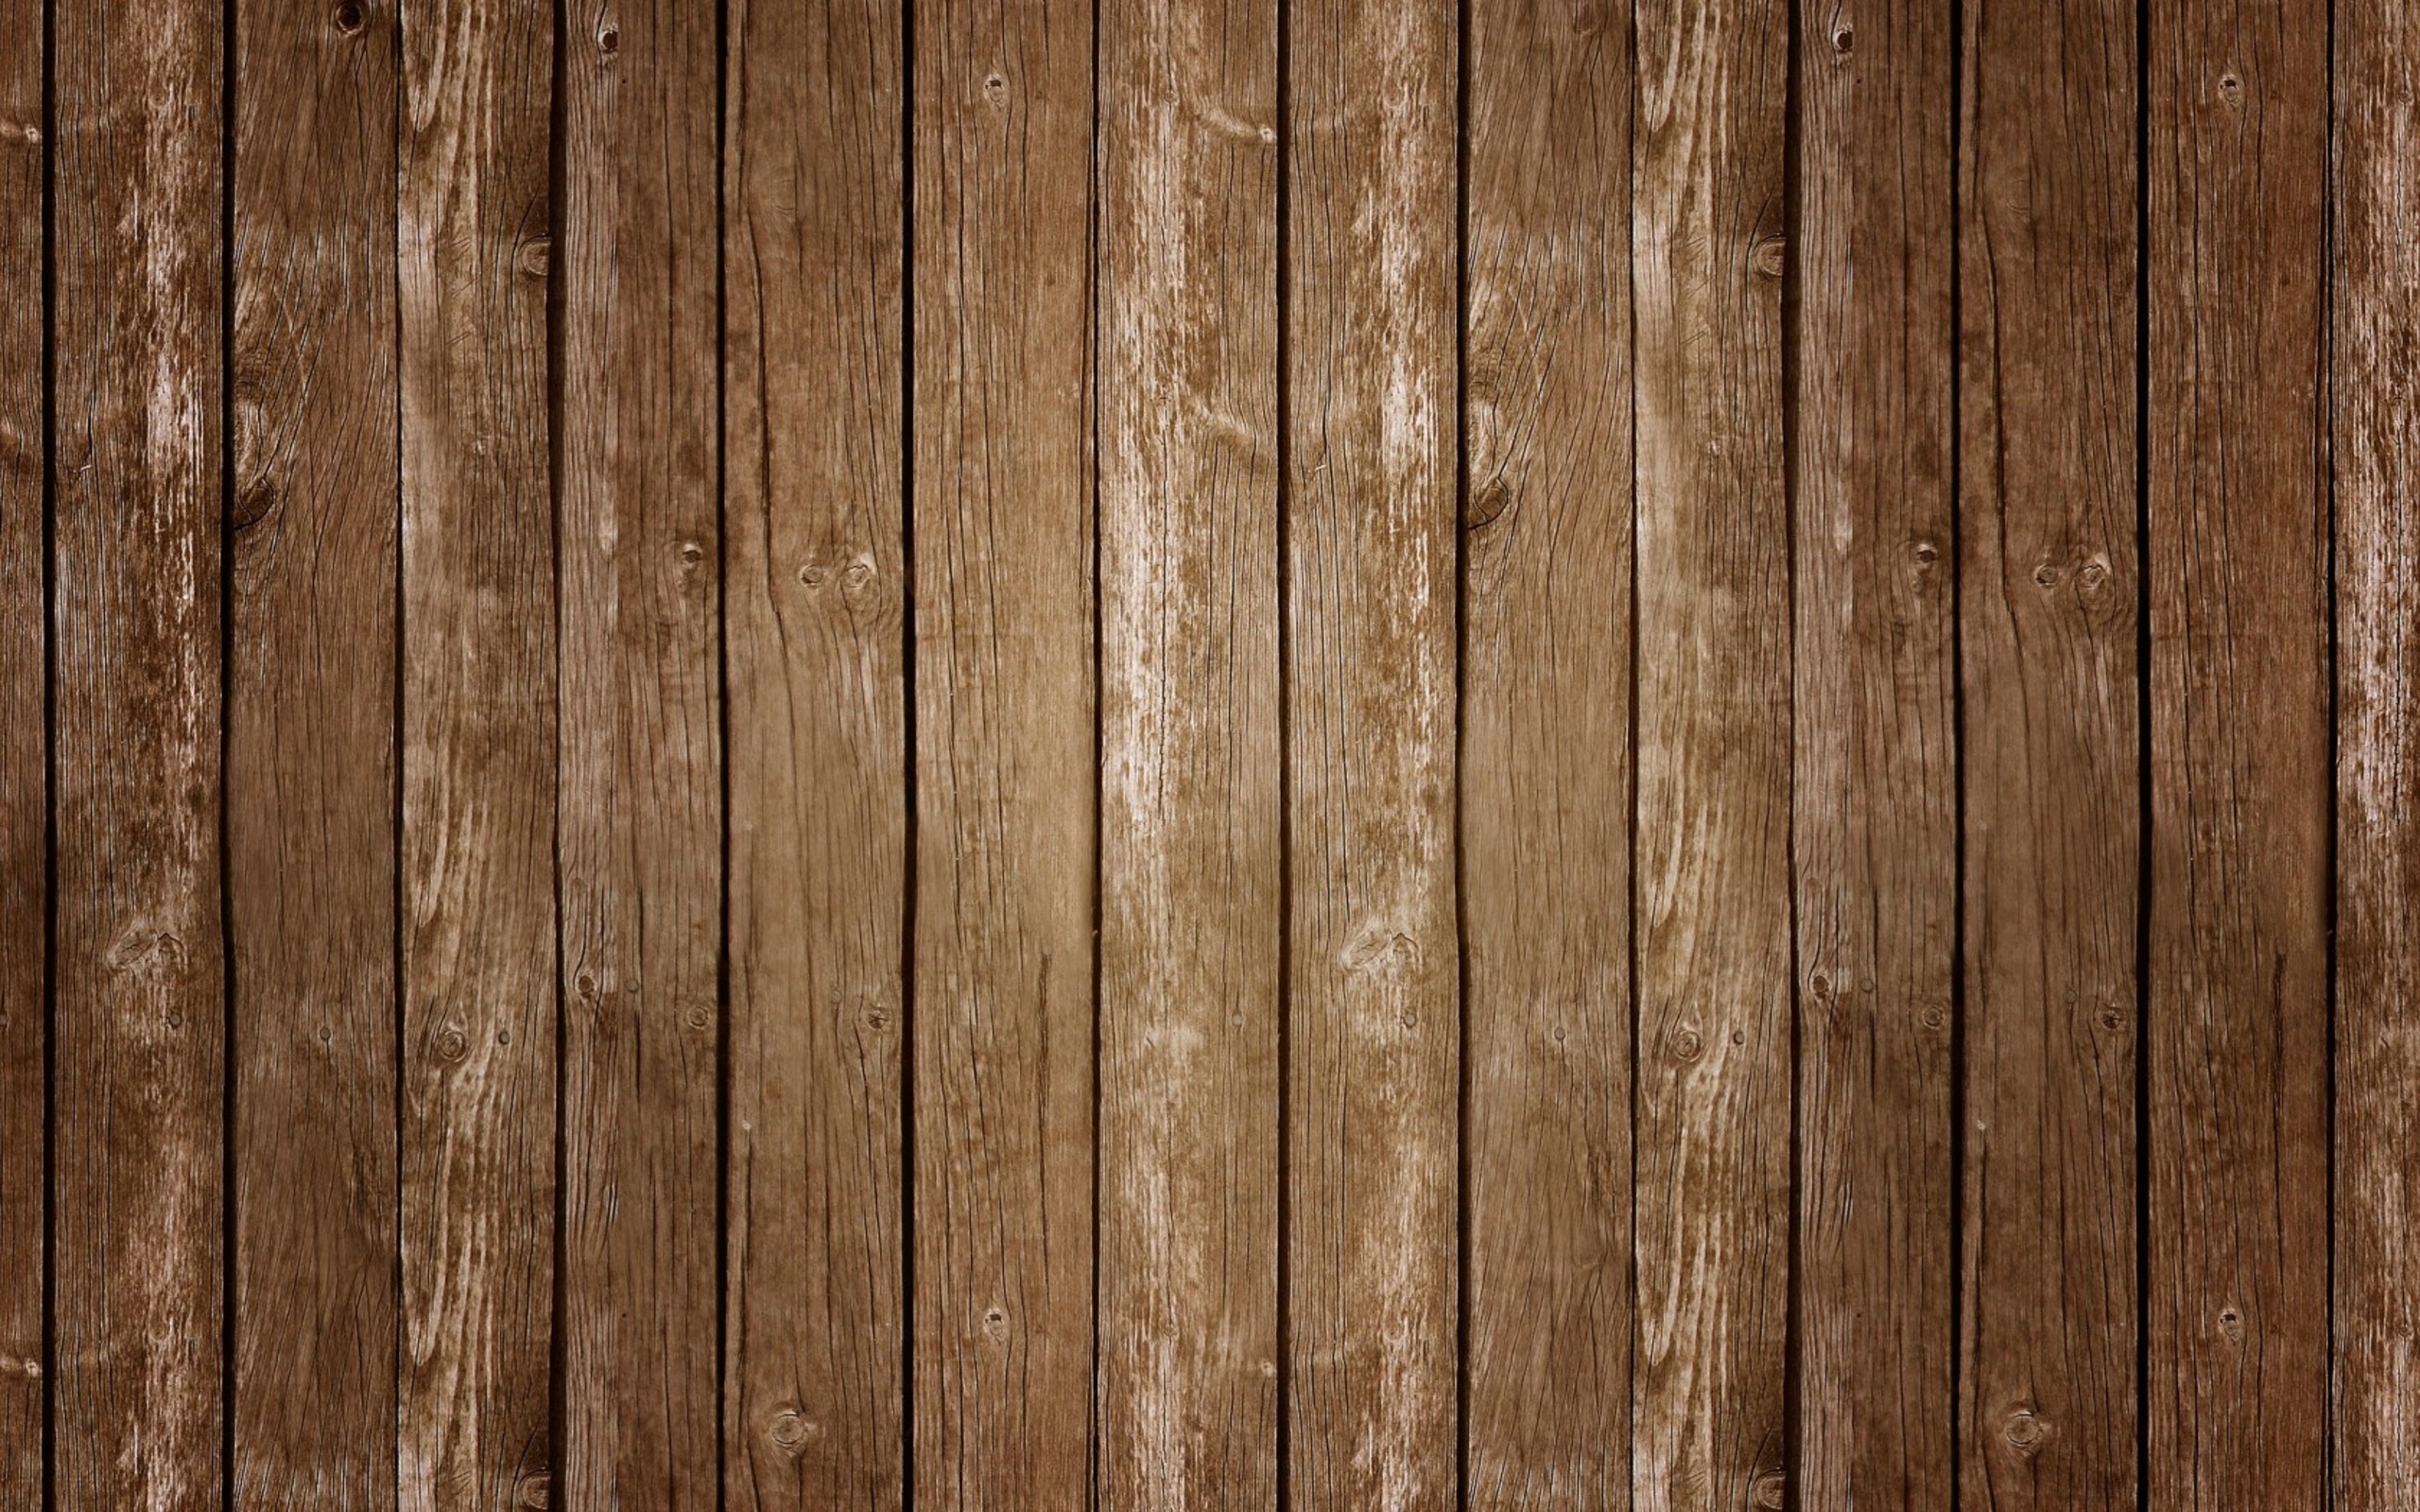 Rustic wood texture for Panel wallpaper